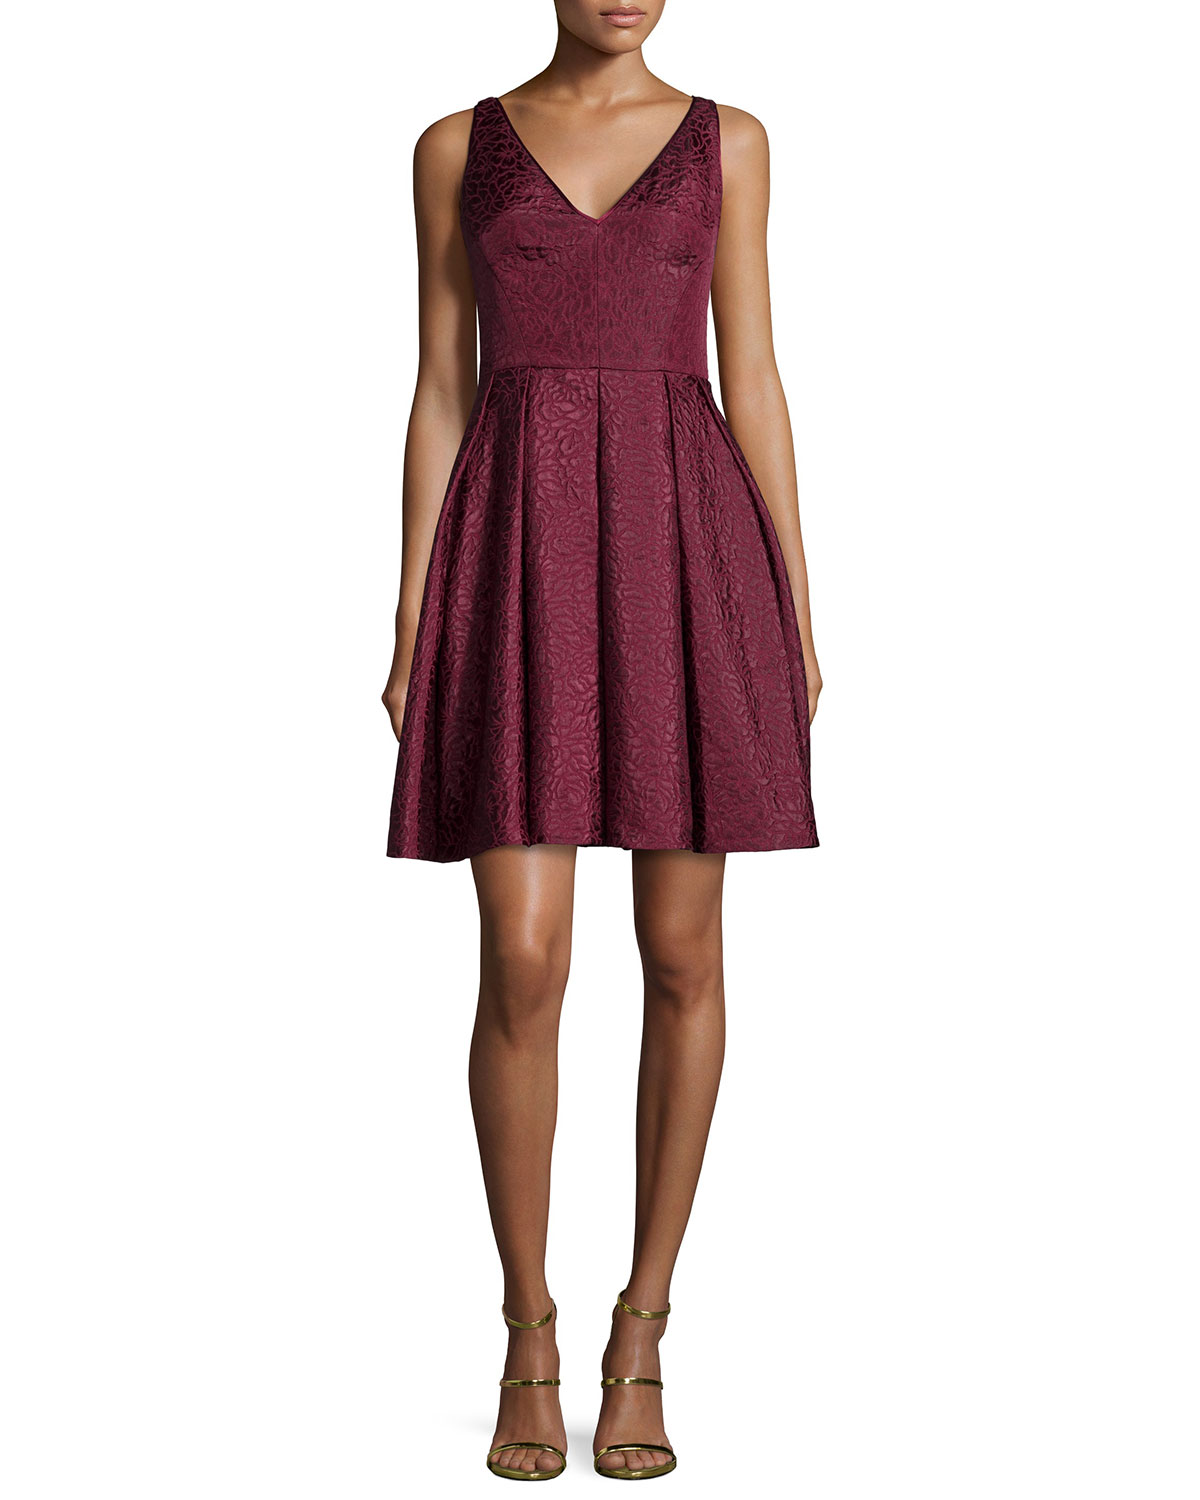 Coco Sleeveless V-Neck Fit & Flare Dress, Size: 0, CRIMSON - ERIN erin fetherston